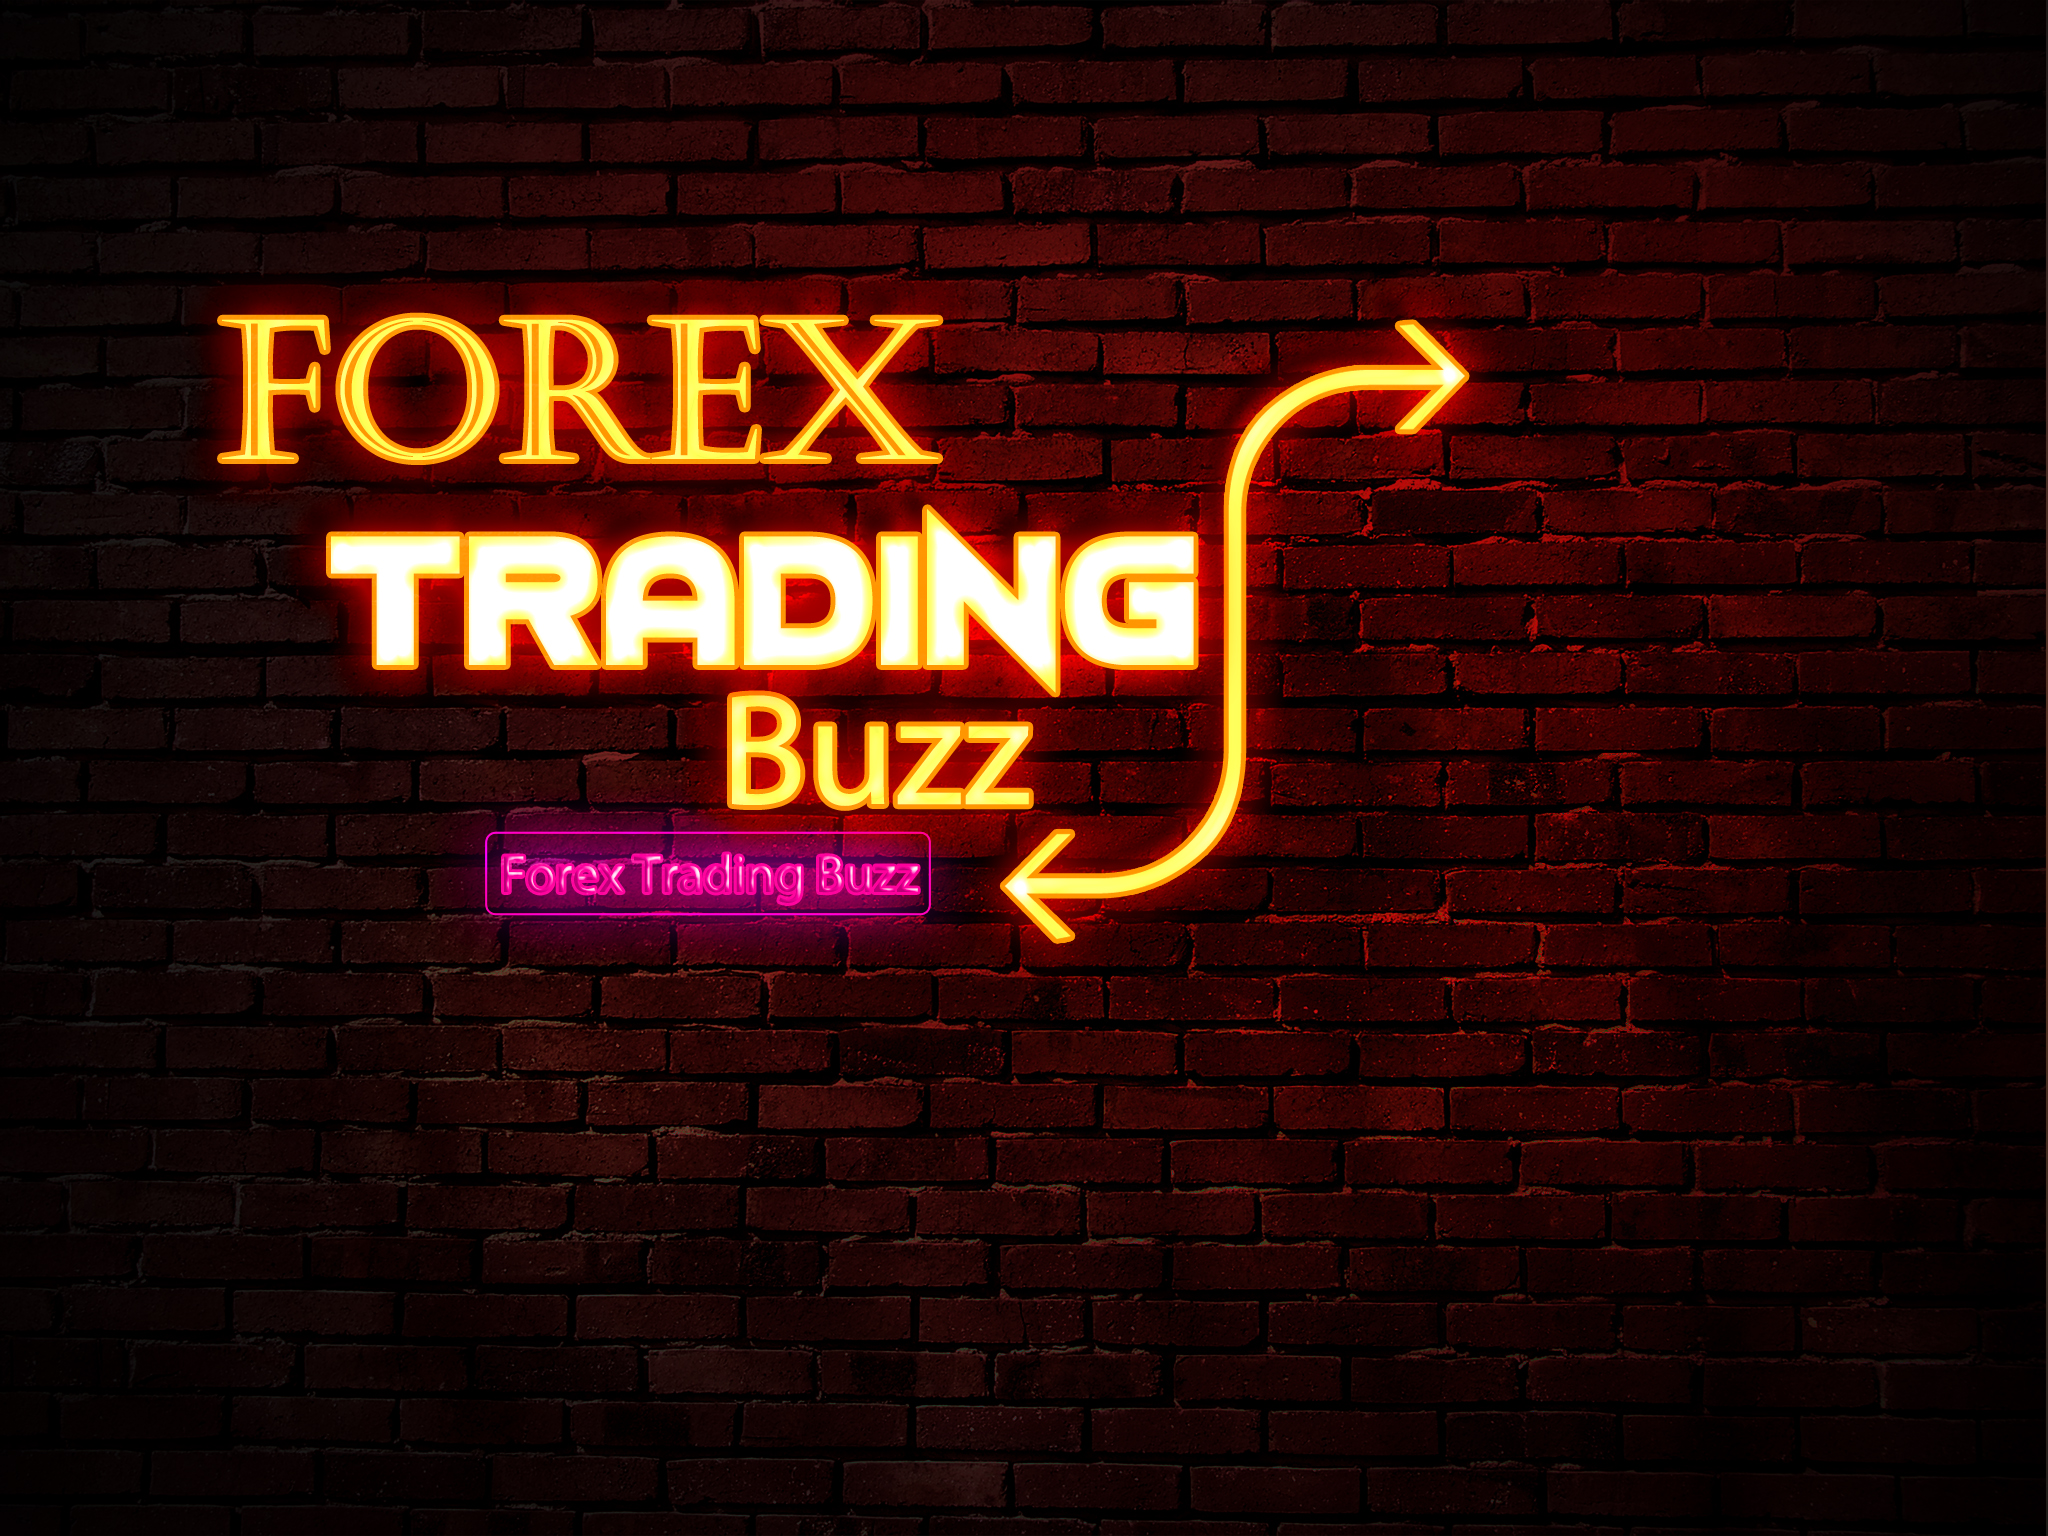 Best forex broker to trade news